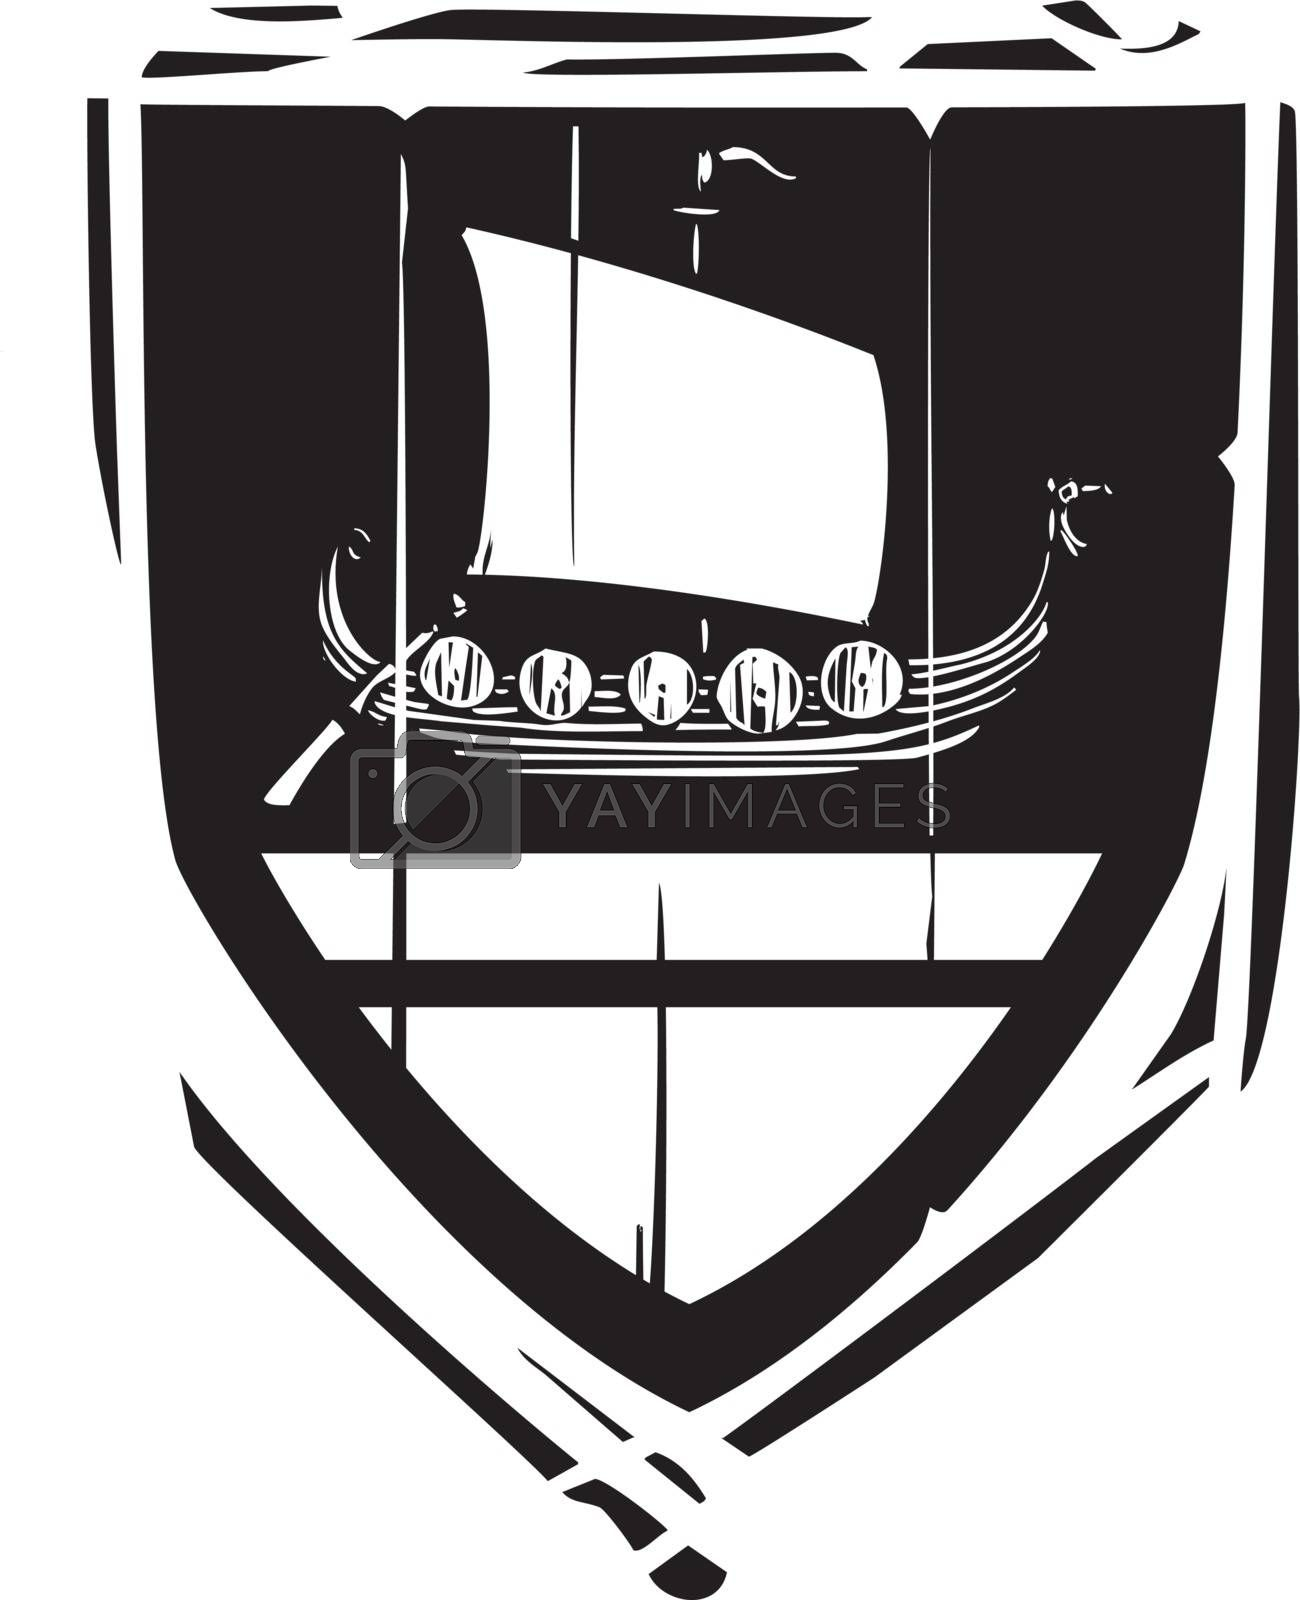 Woodcut style Heraldic Shield with a Viking Longship